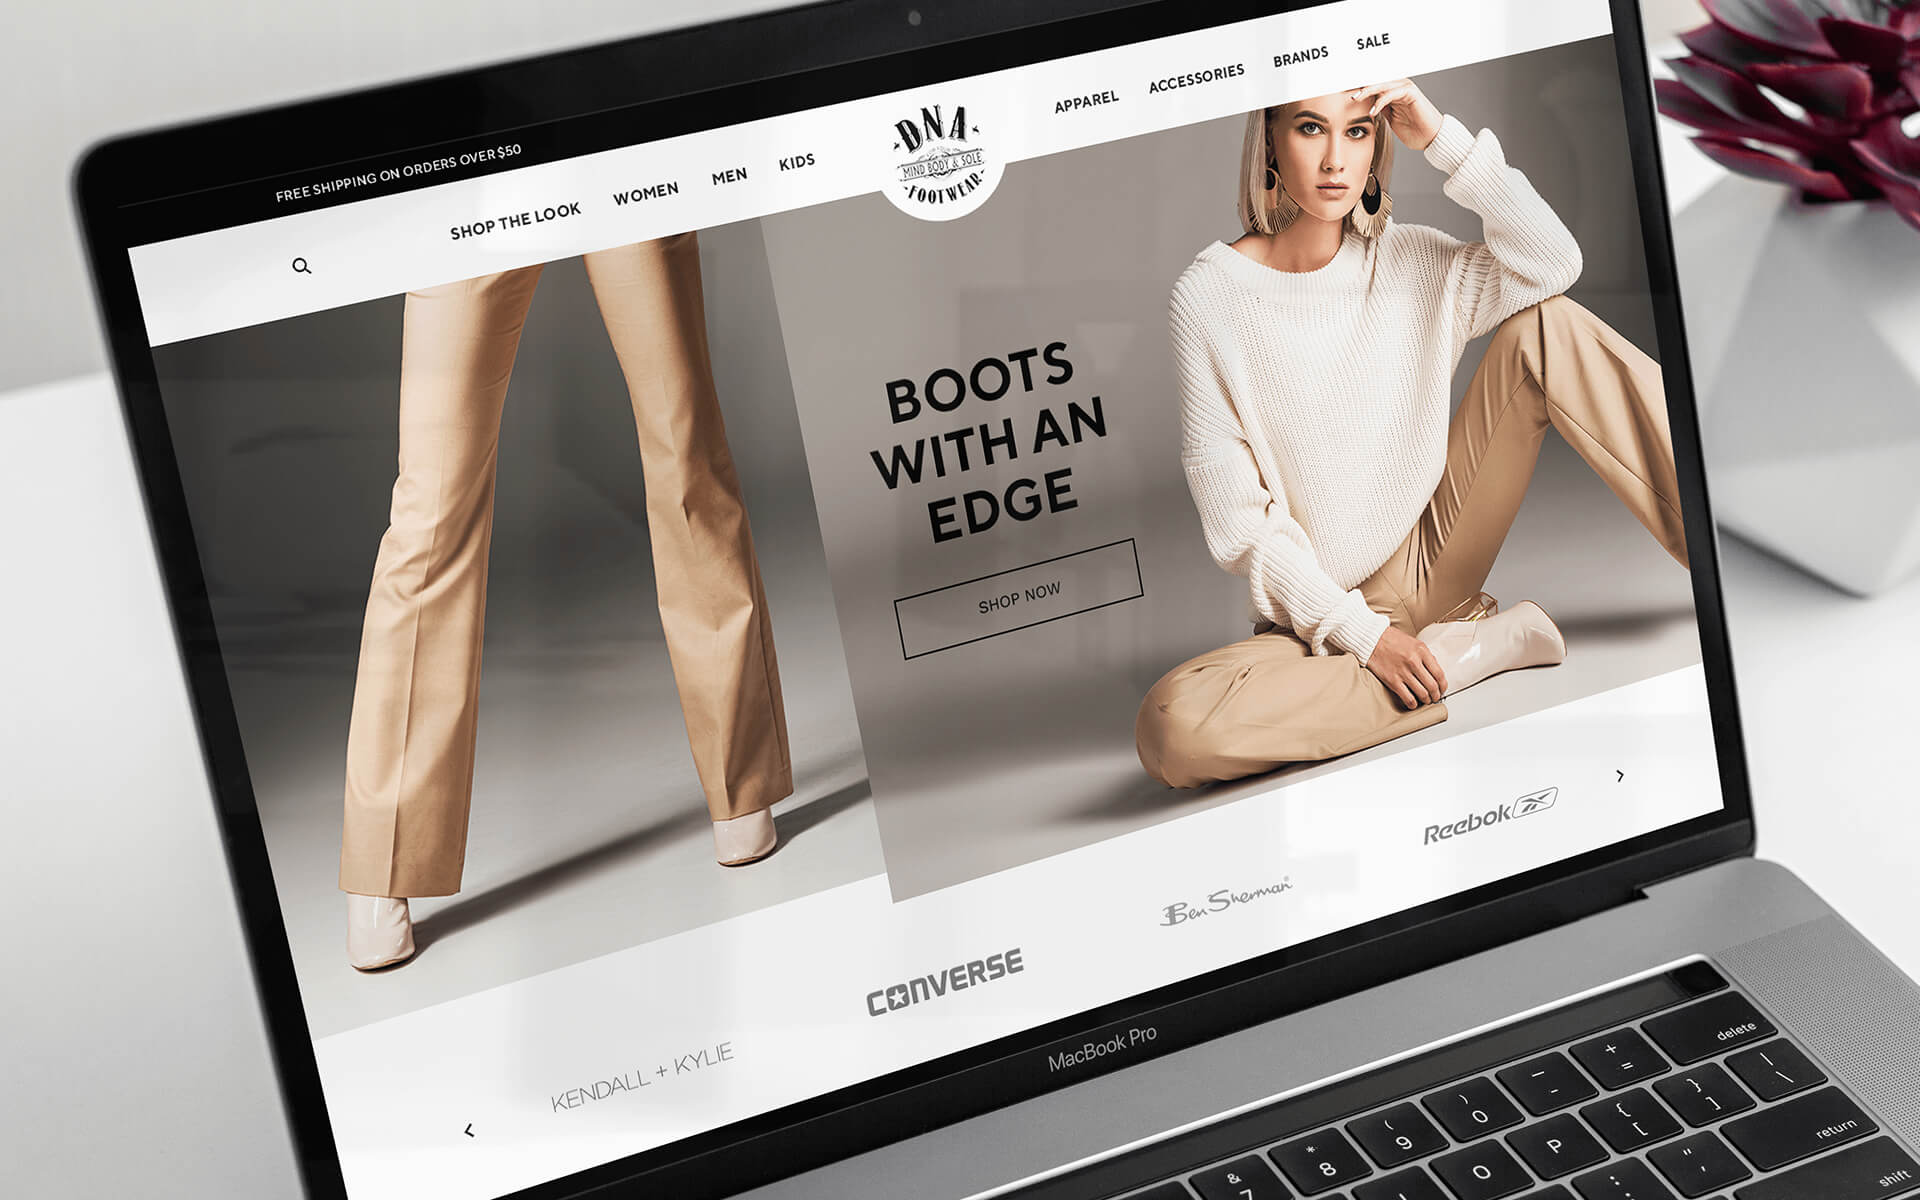 Footwear Marketing Digital Marketing Image With Model Wearing Boots Shown on Laptop